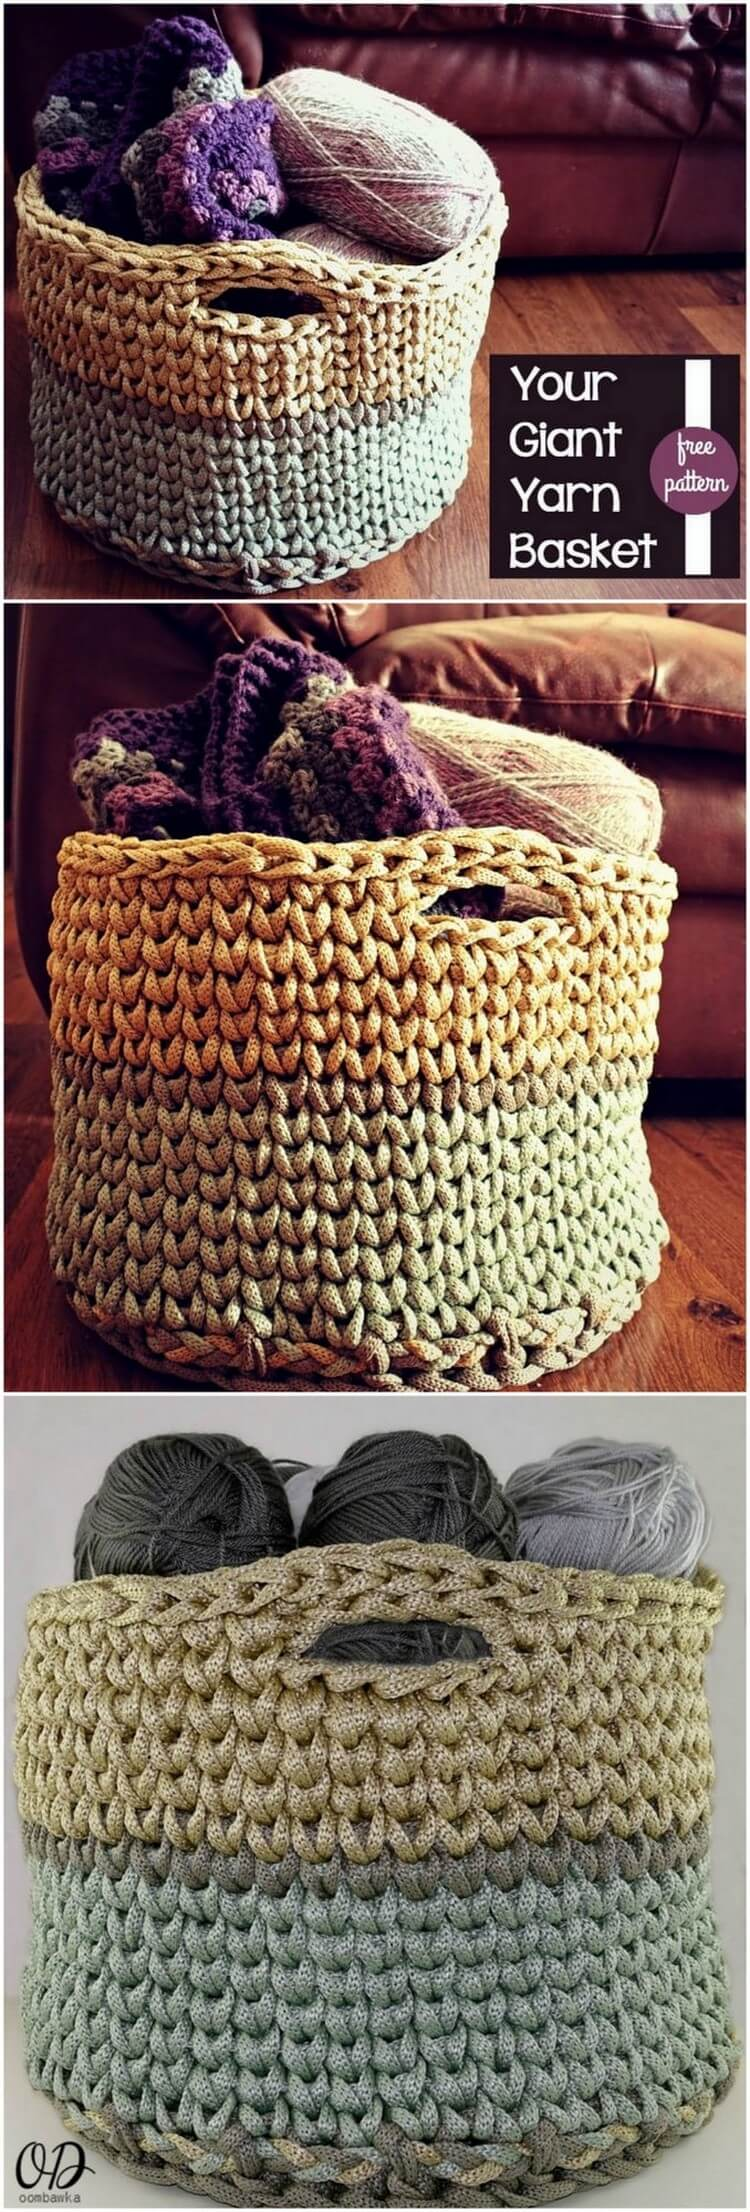 Crochet Basket Pattern (79)